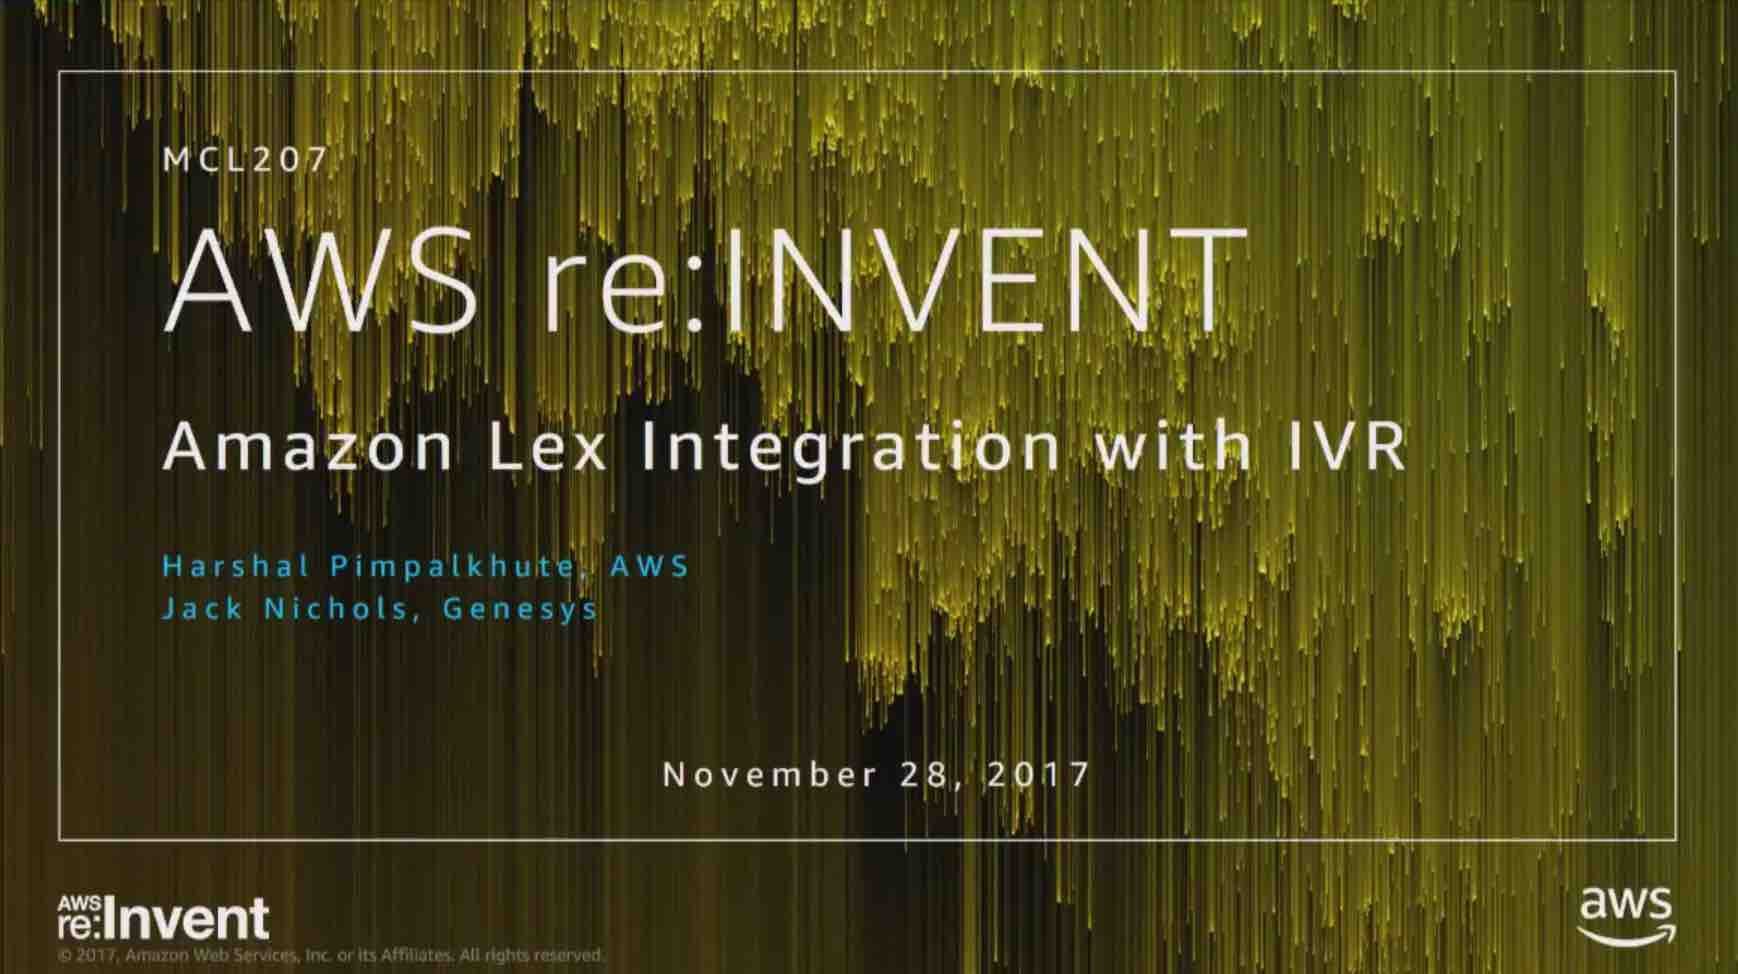 Amazon Lex Integration with Interactive Voice Response (IVR) Workflow